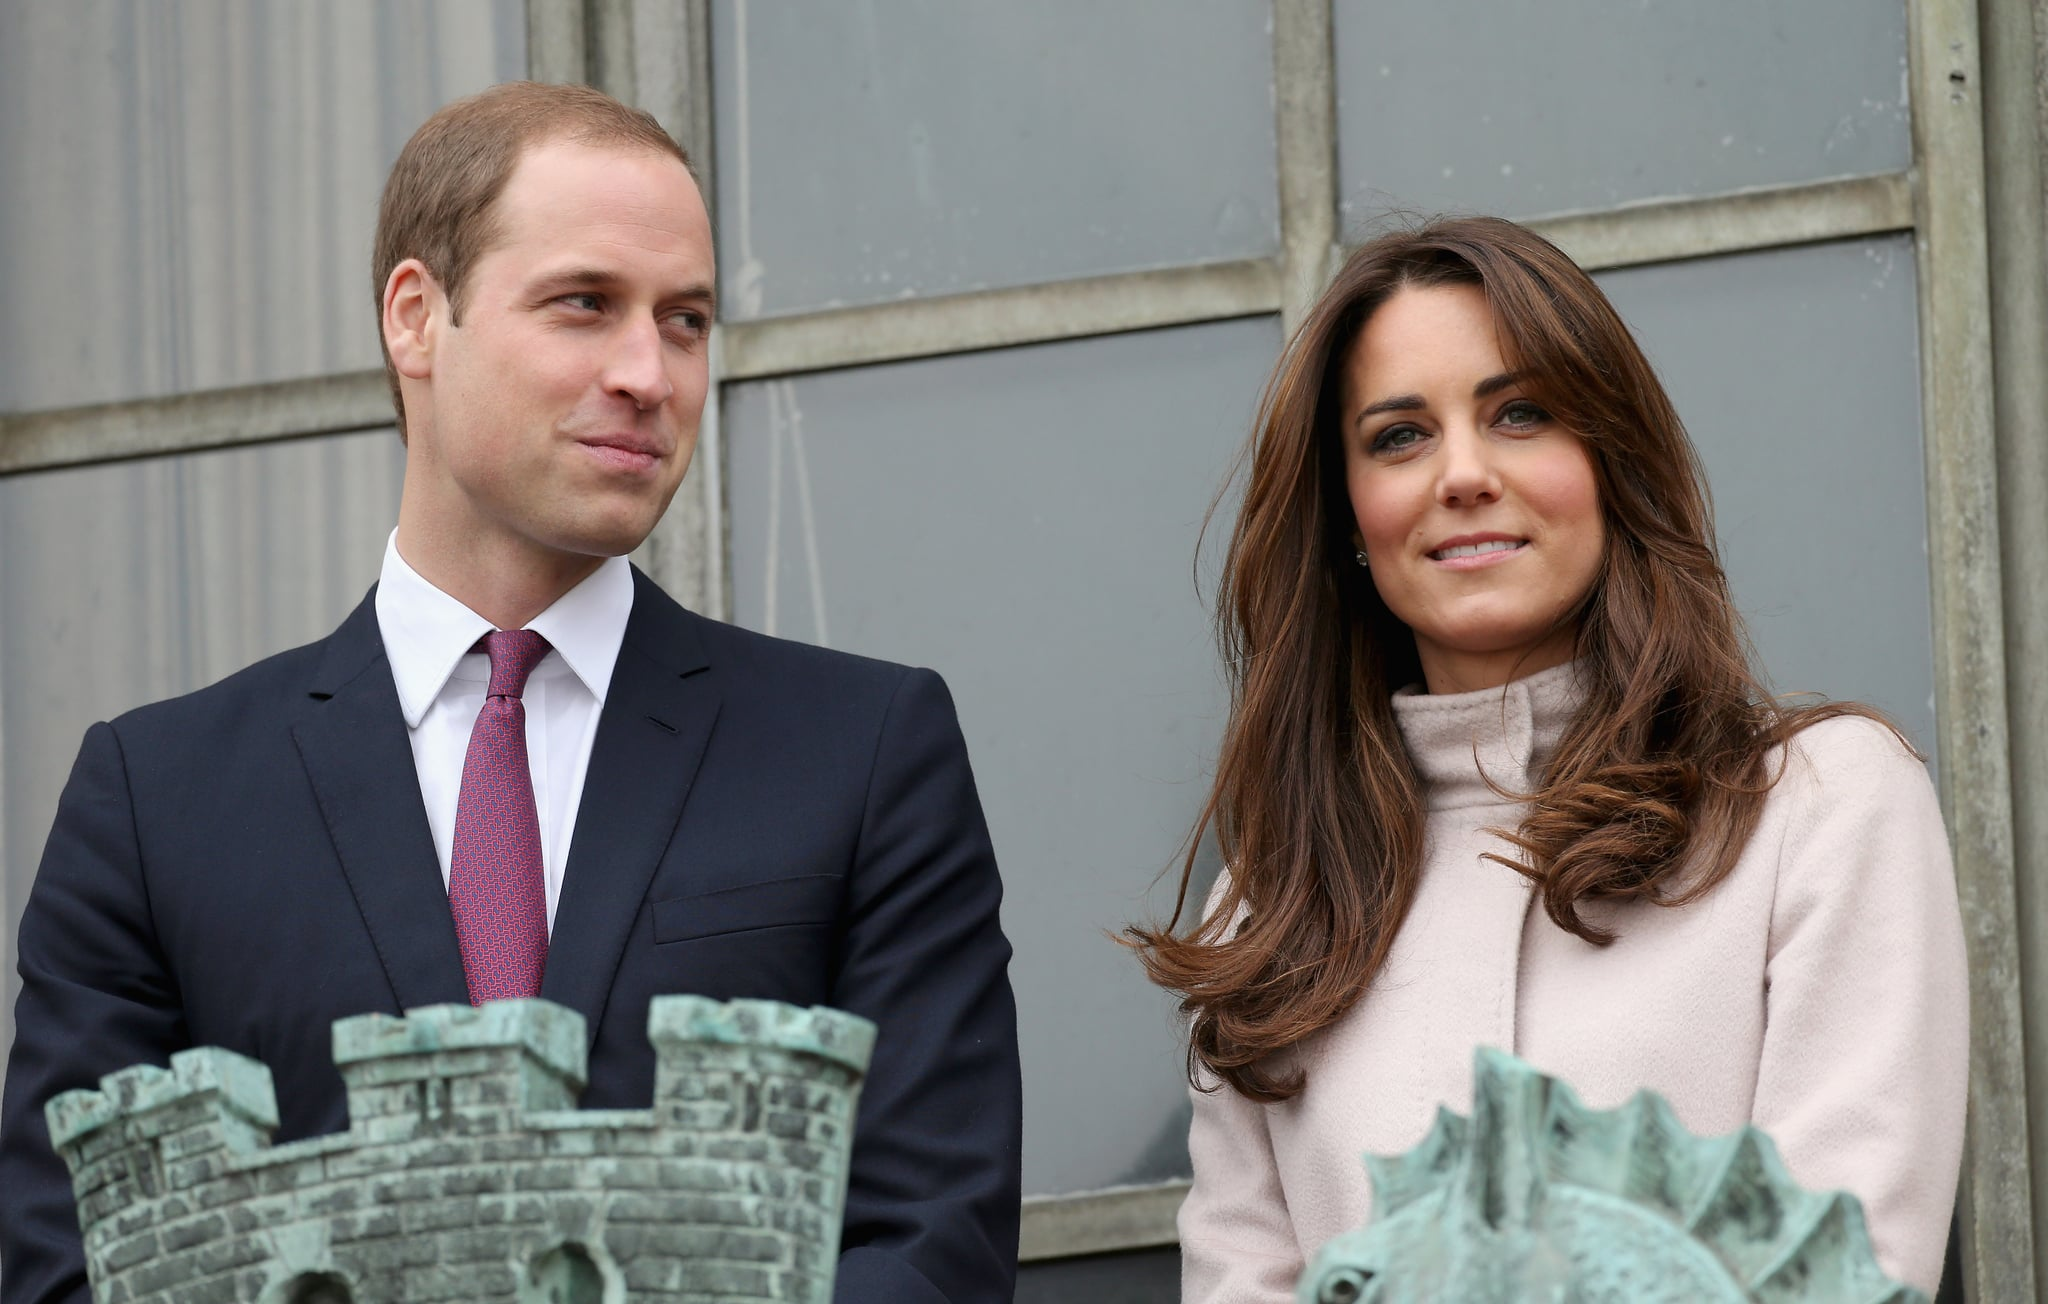 Kate Middleton and Prince William arrived in Cambridge for their official visit.